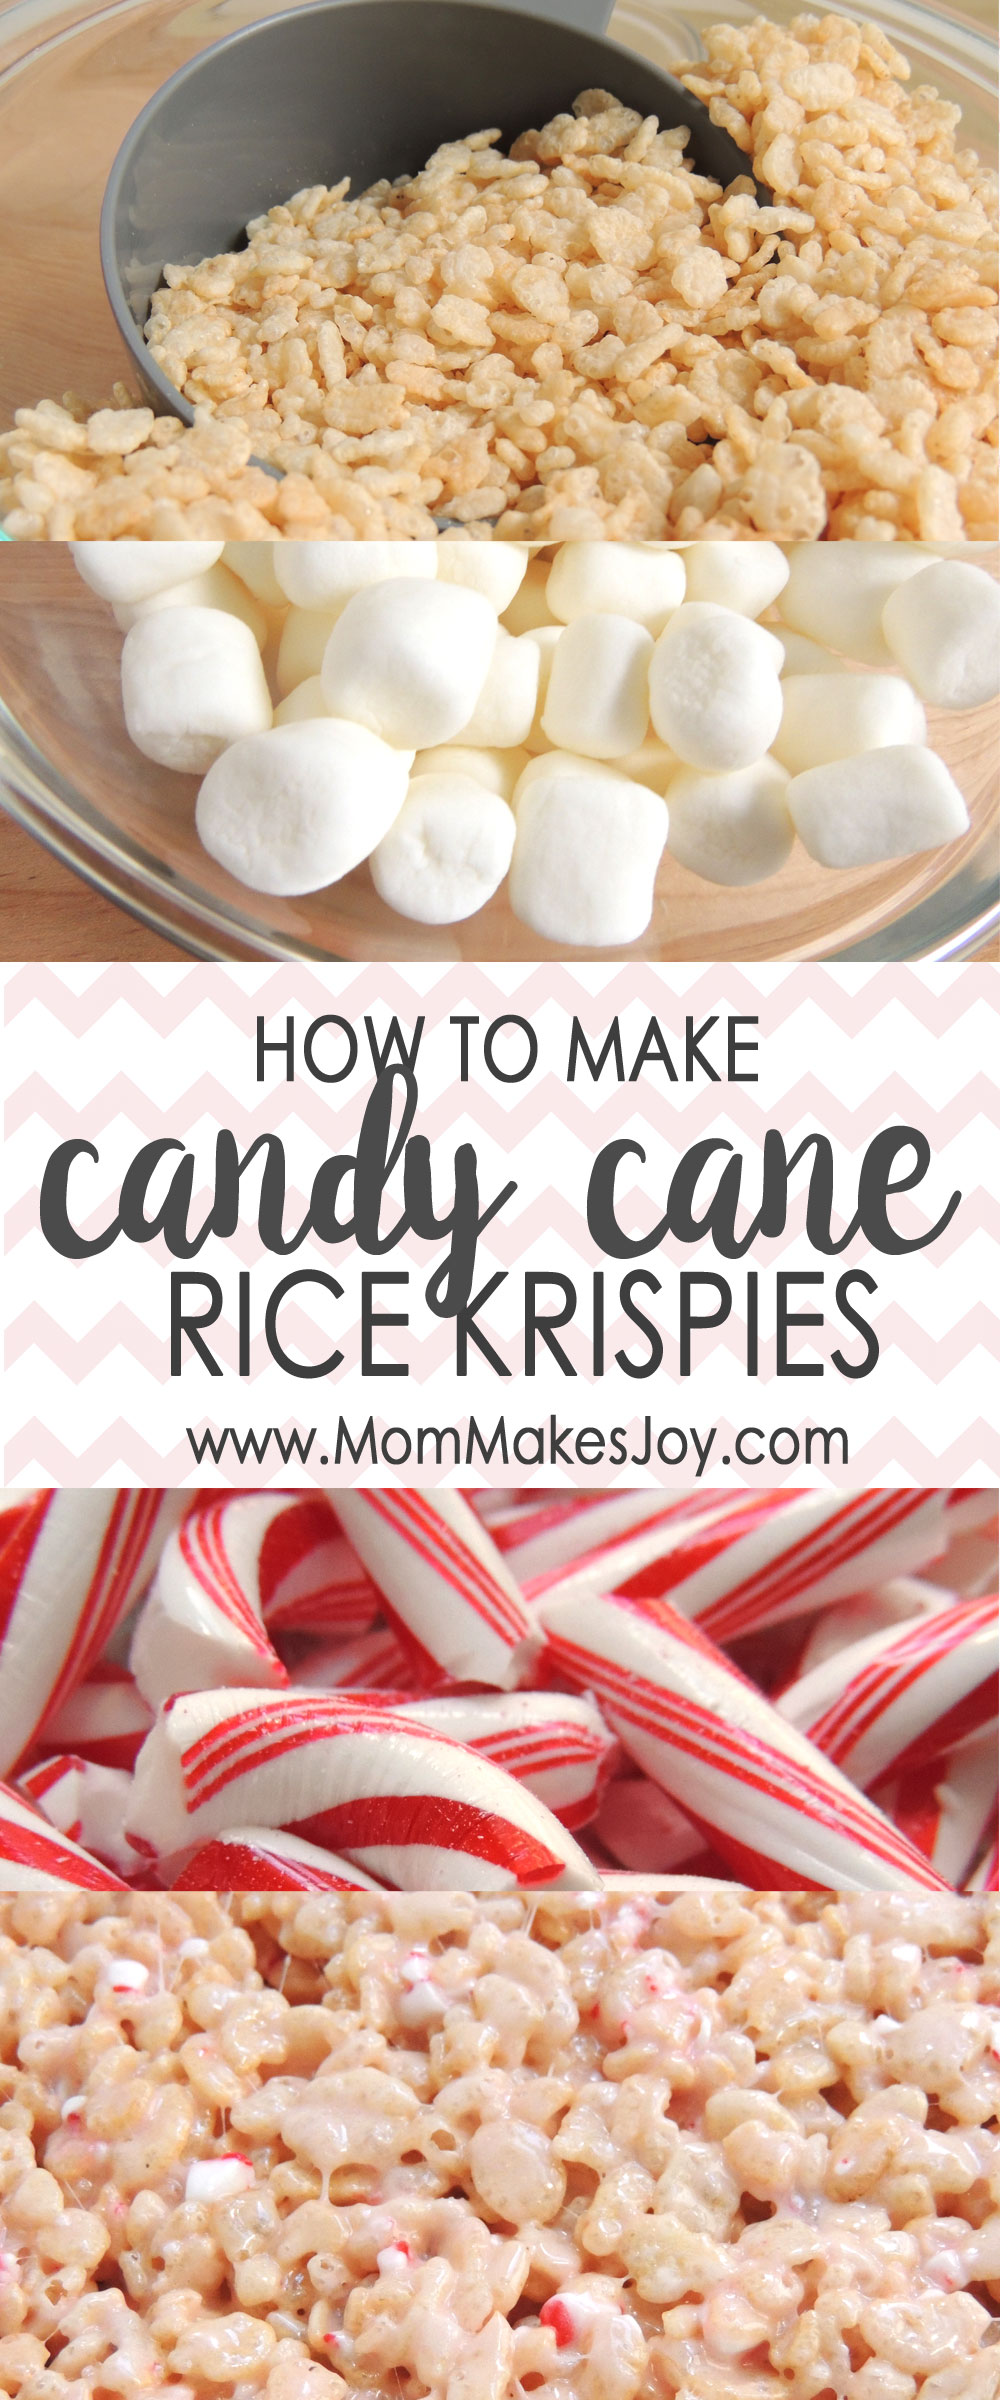 This recipe for Candy Cane Rice Krispie Treats is the perfect holiday snack! With just five ingredients, these treats will be ready to please in no time. | Holiday Recipes | Holiday Desserts | Christmas Treats | Peppermint | Mom Makes Joy